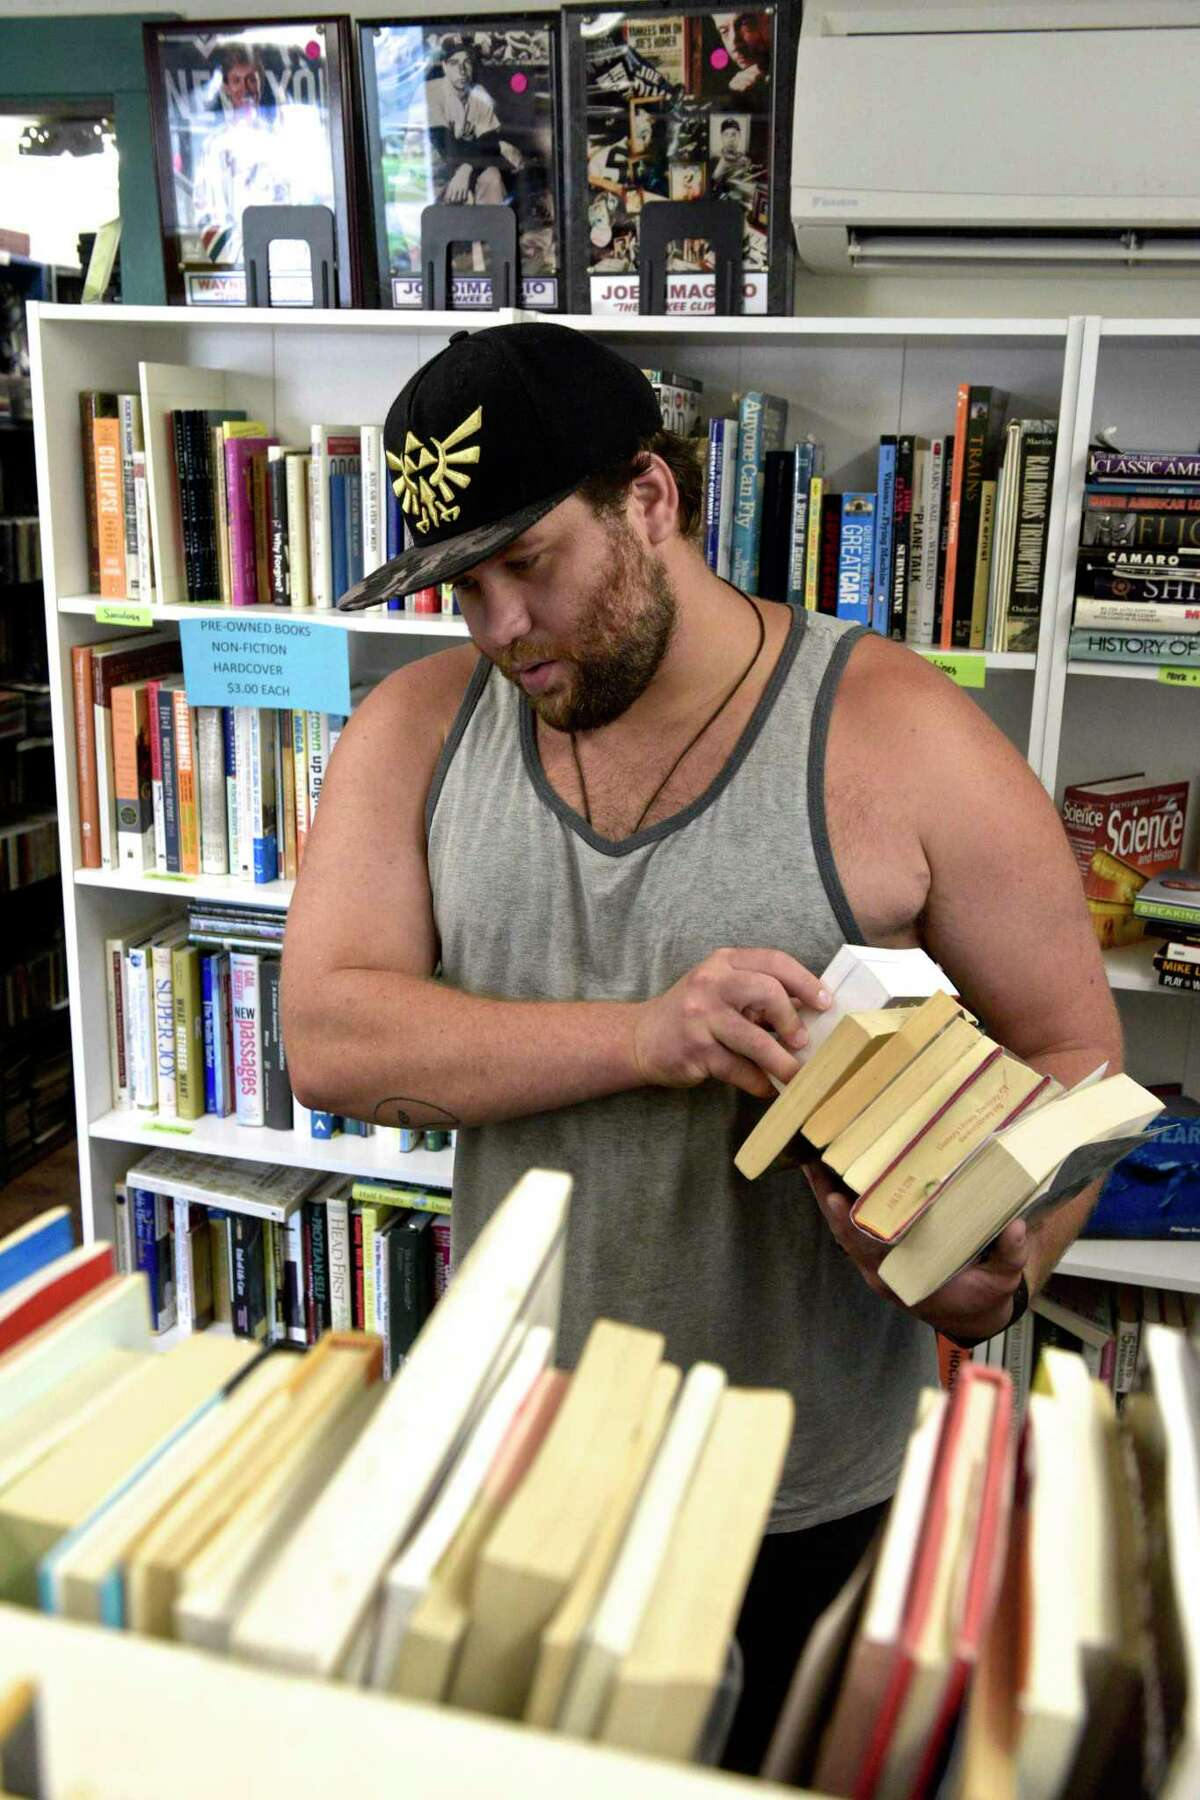 Nick Kuell, of Danbury, shops for books at the new Friends of the Danbury Library used book store at 15 Main St. in Danbury on Friday.